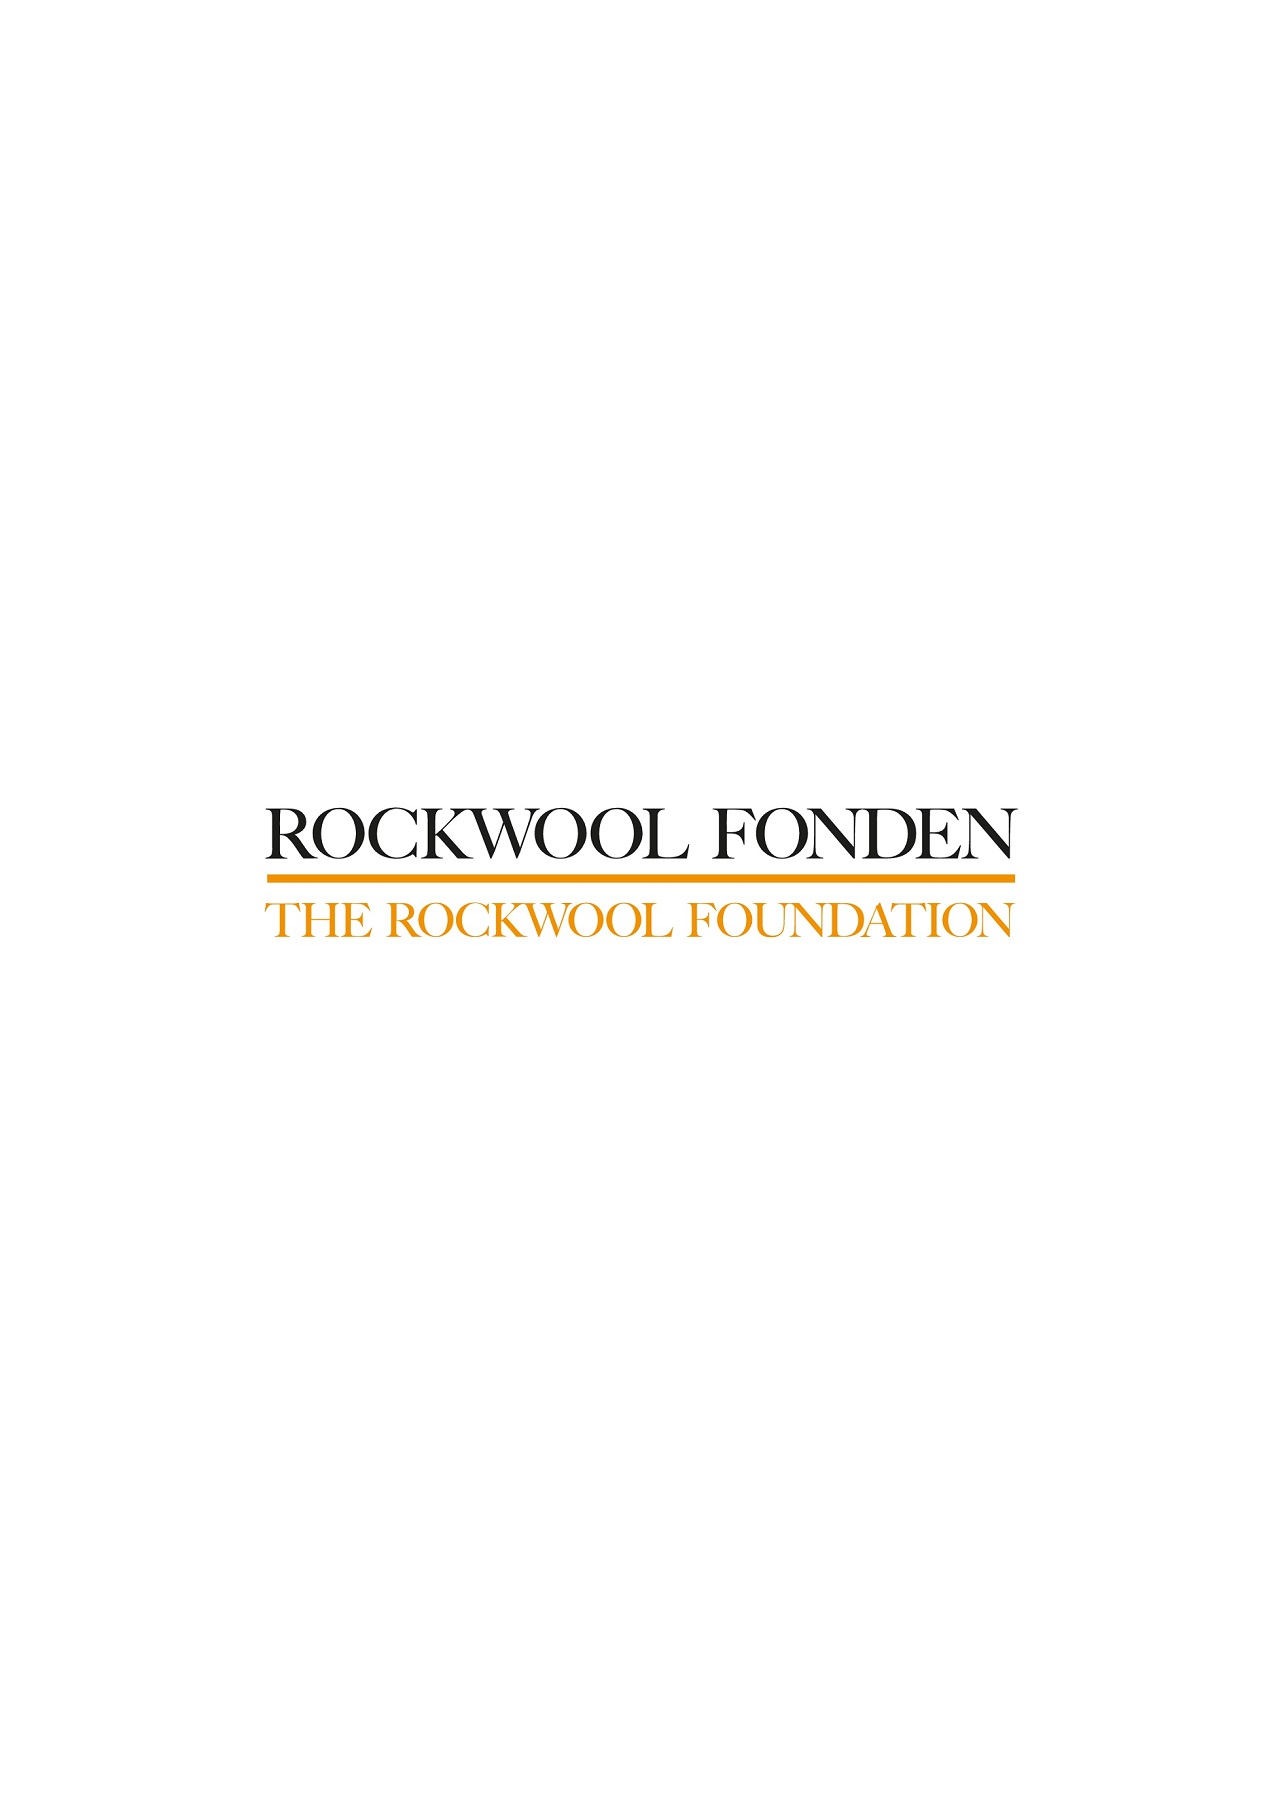 1981 - The ROCKWOOL Foundation